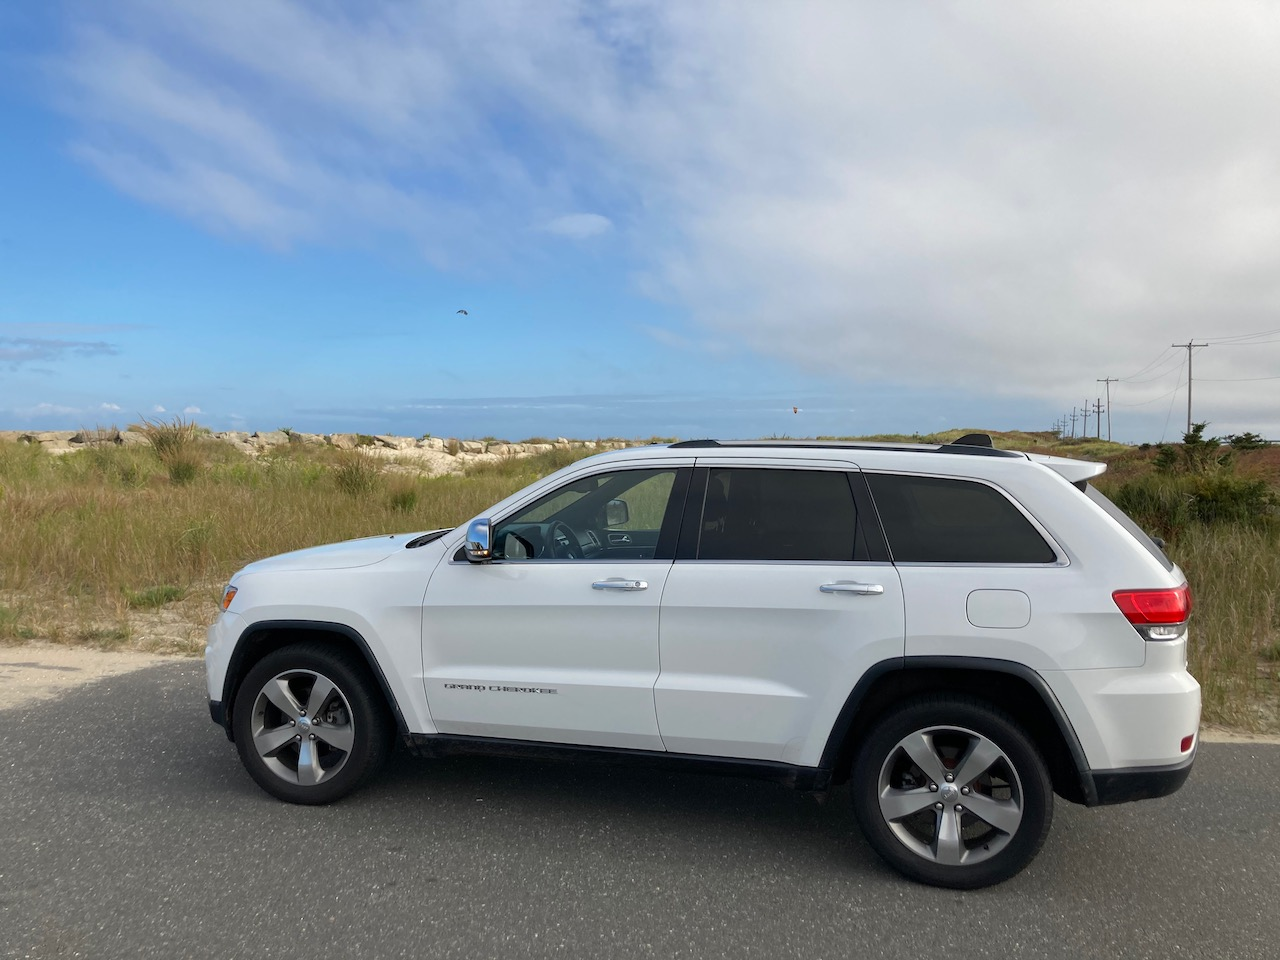 2014 Jeep Grand Cherokee parked by dunes.